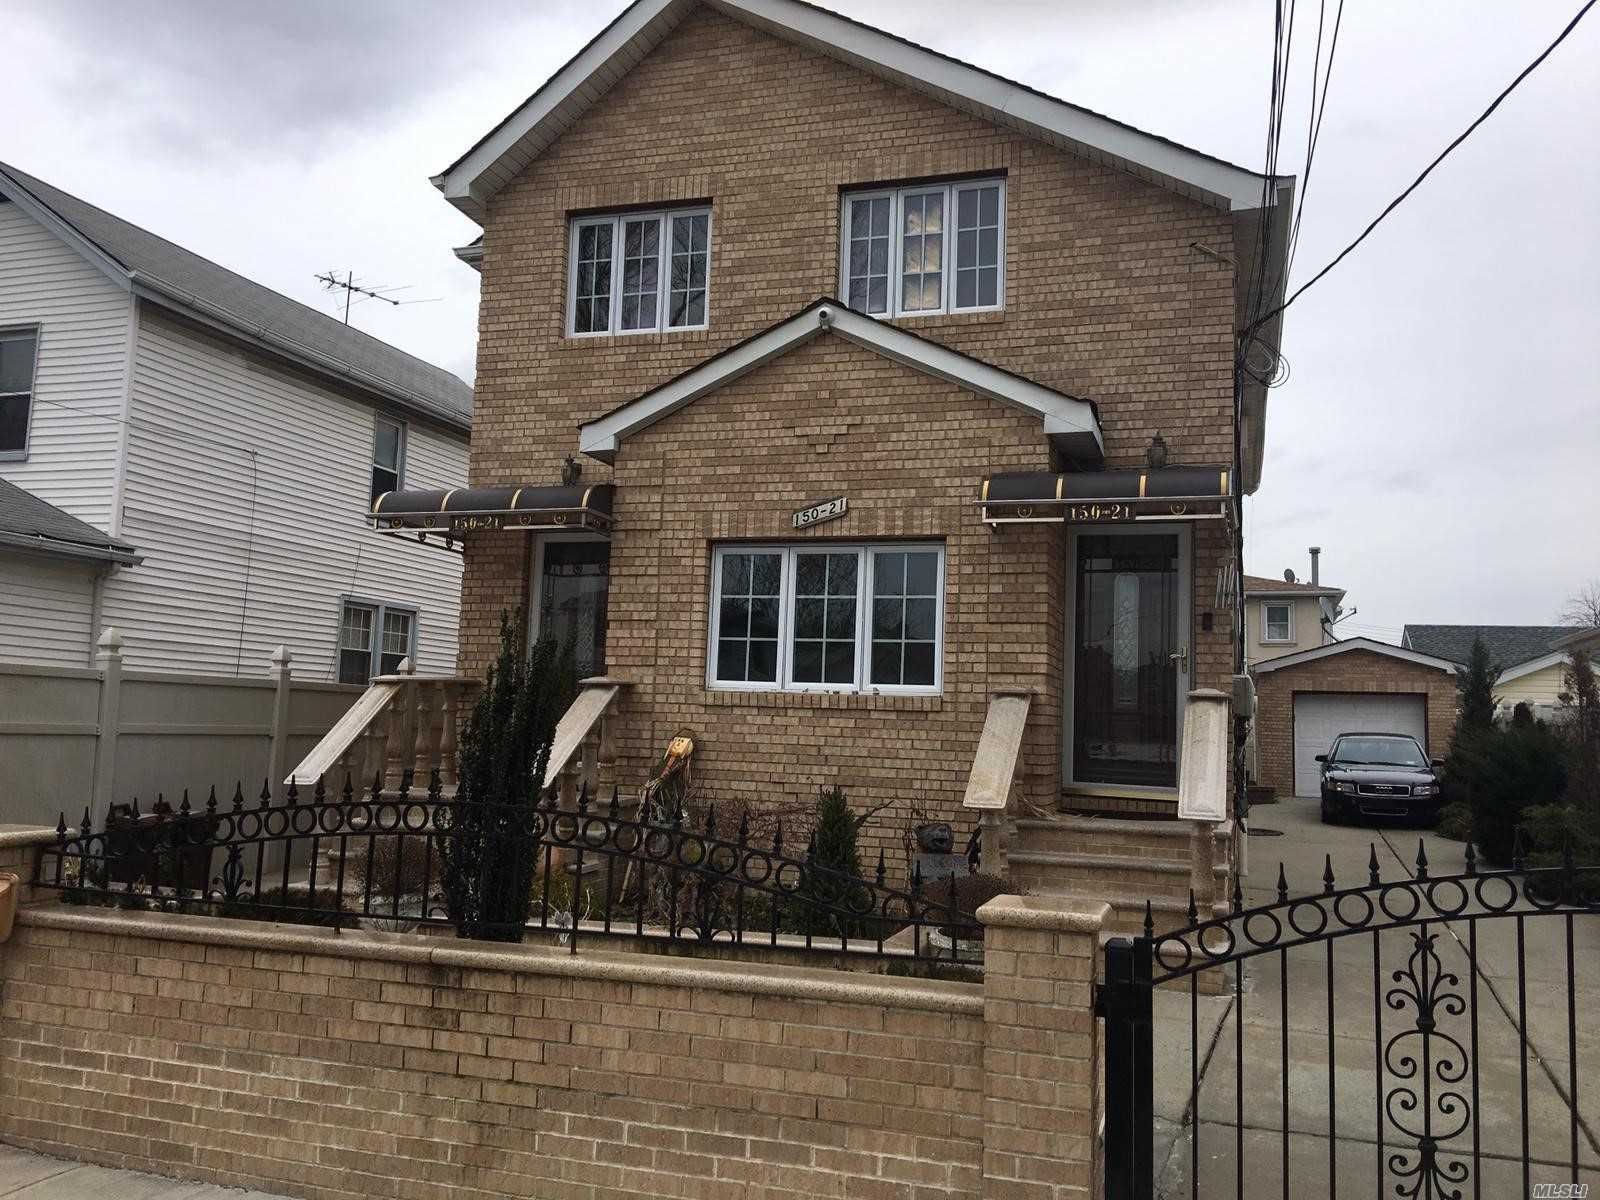 Attention Jfk Workers!!!! Here Is The Home For You!!! Right Behind Jfk Airport!!! Wooden Floors, Brick House!!! Credit And Income Verification A Must!